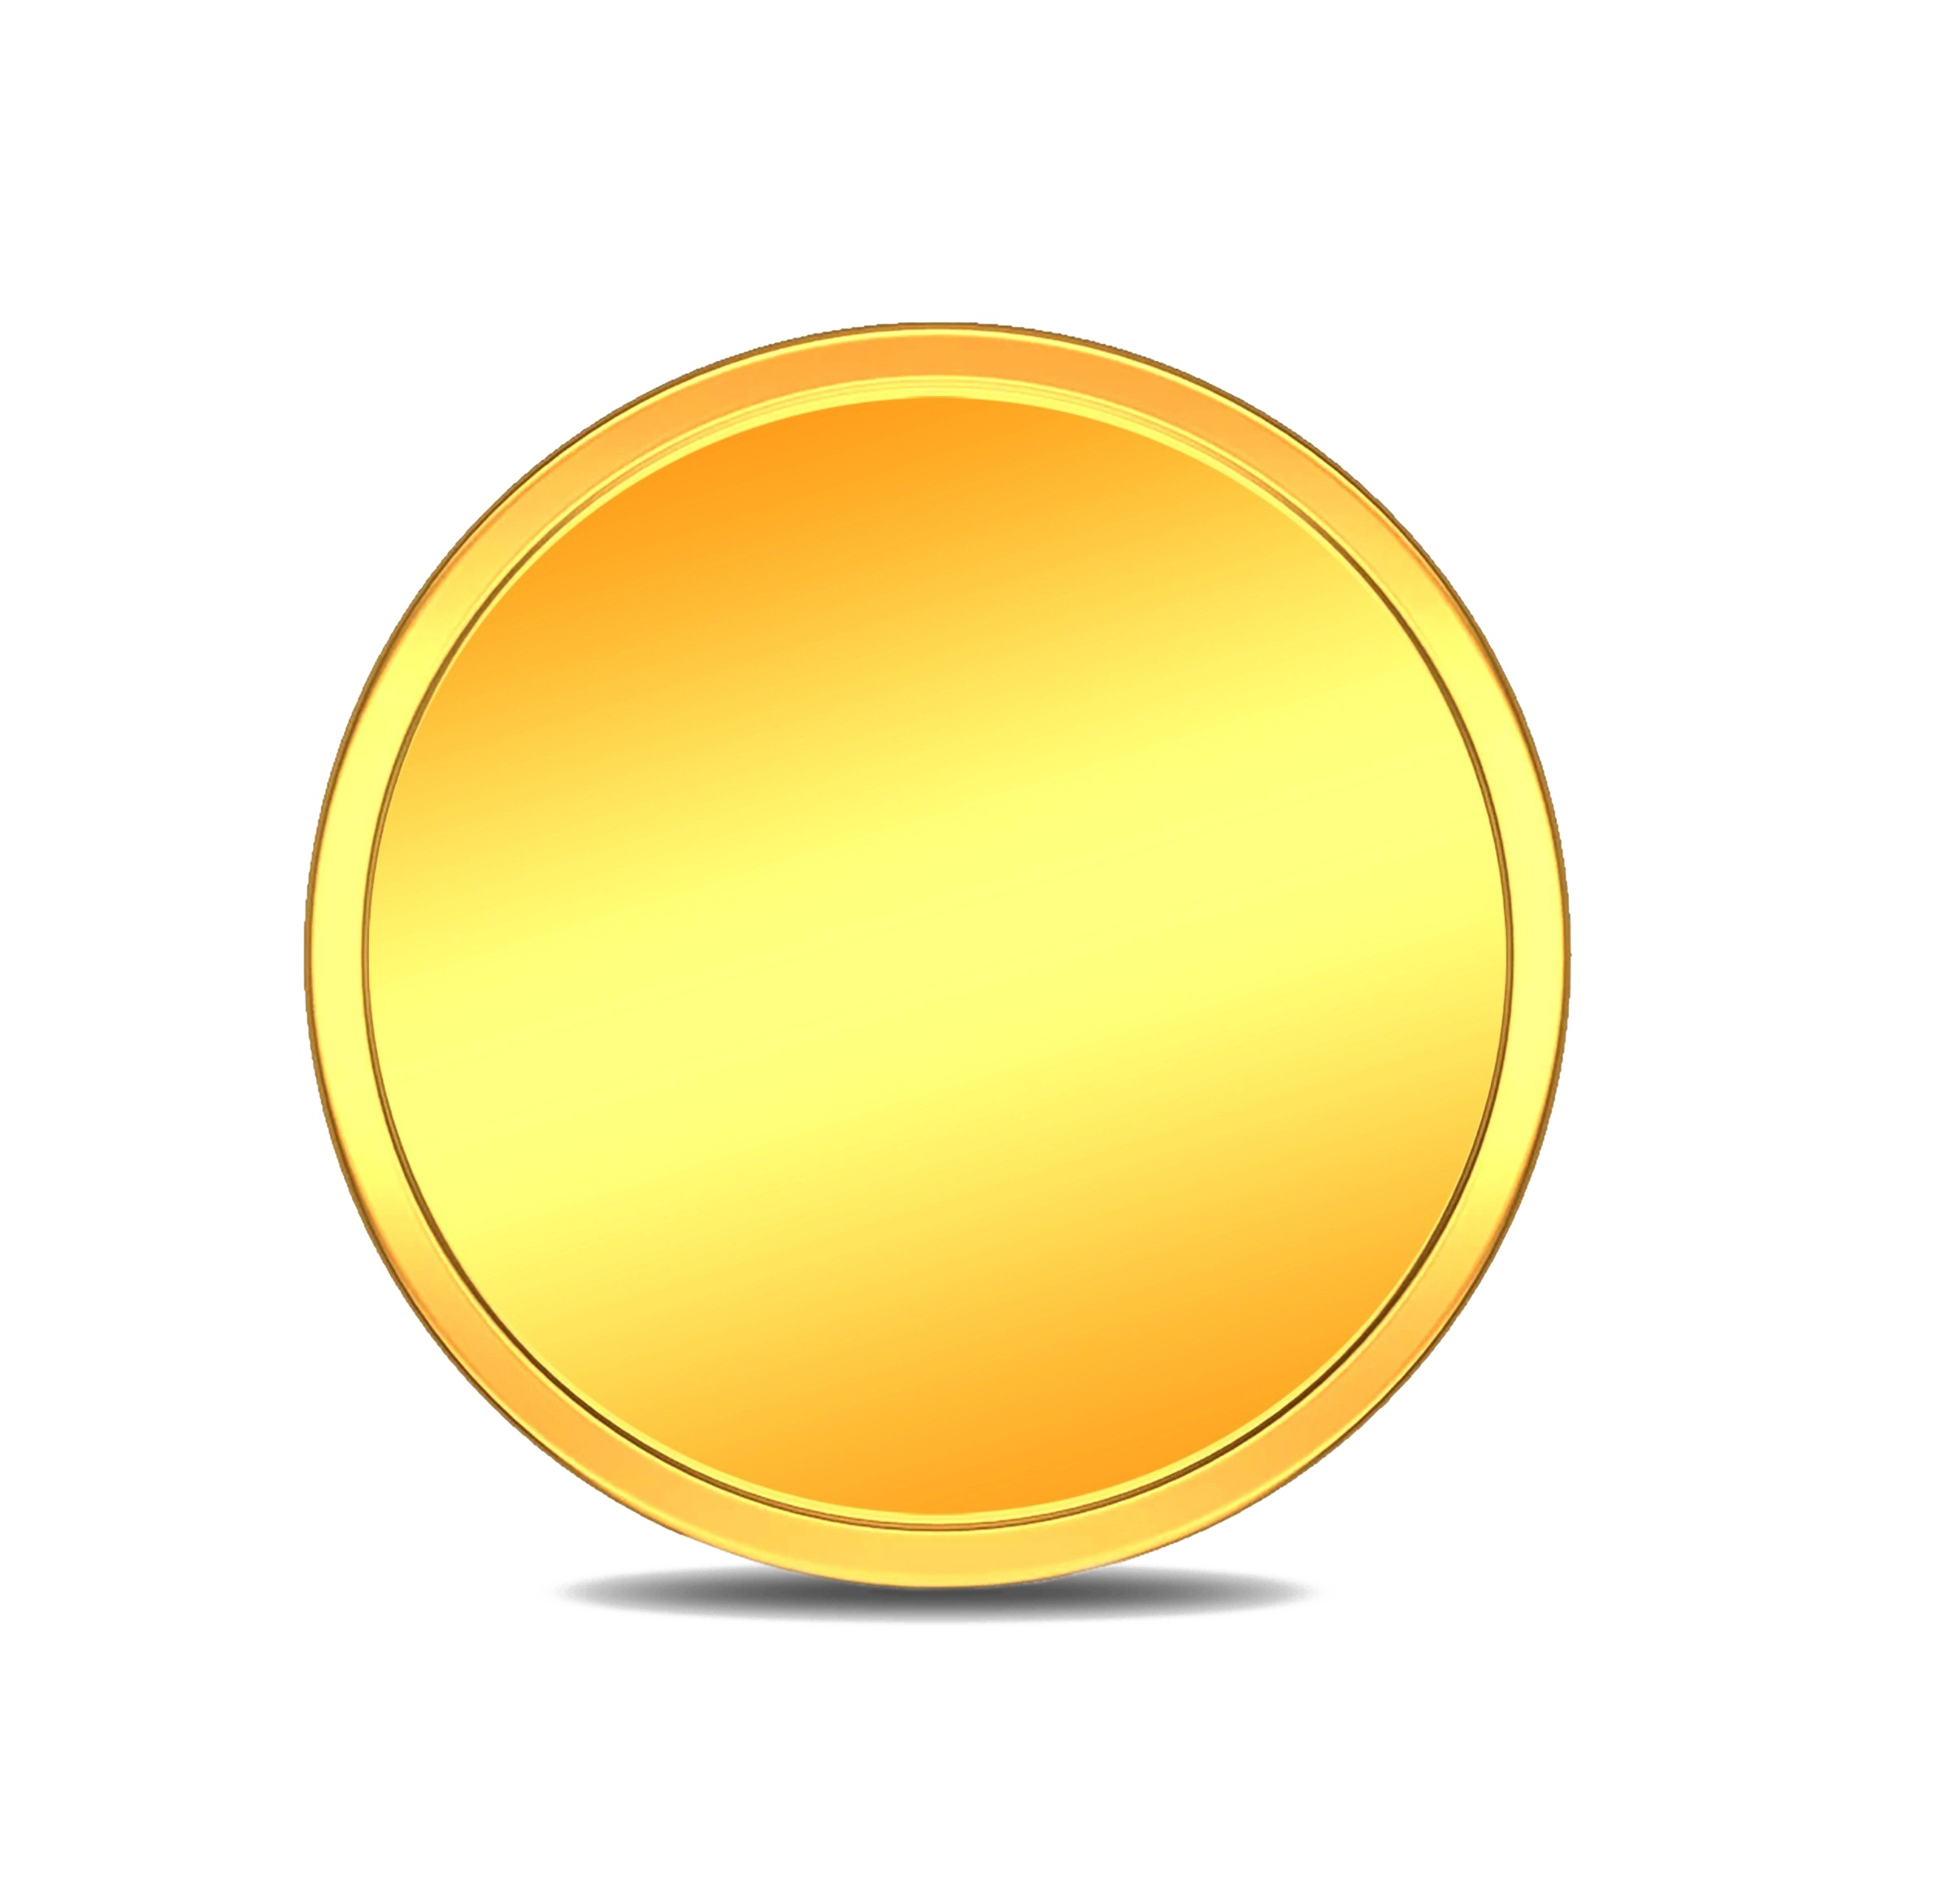 Coin PNG Image Transparent Background.